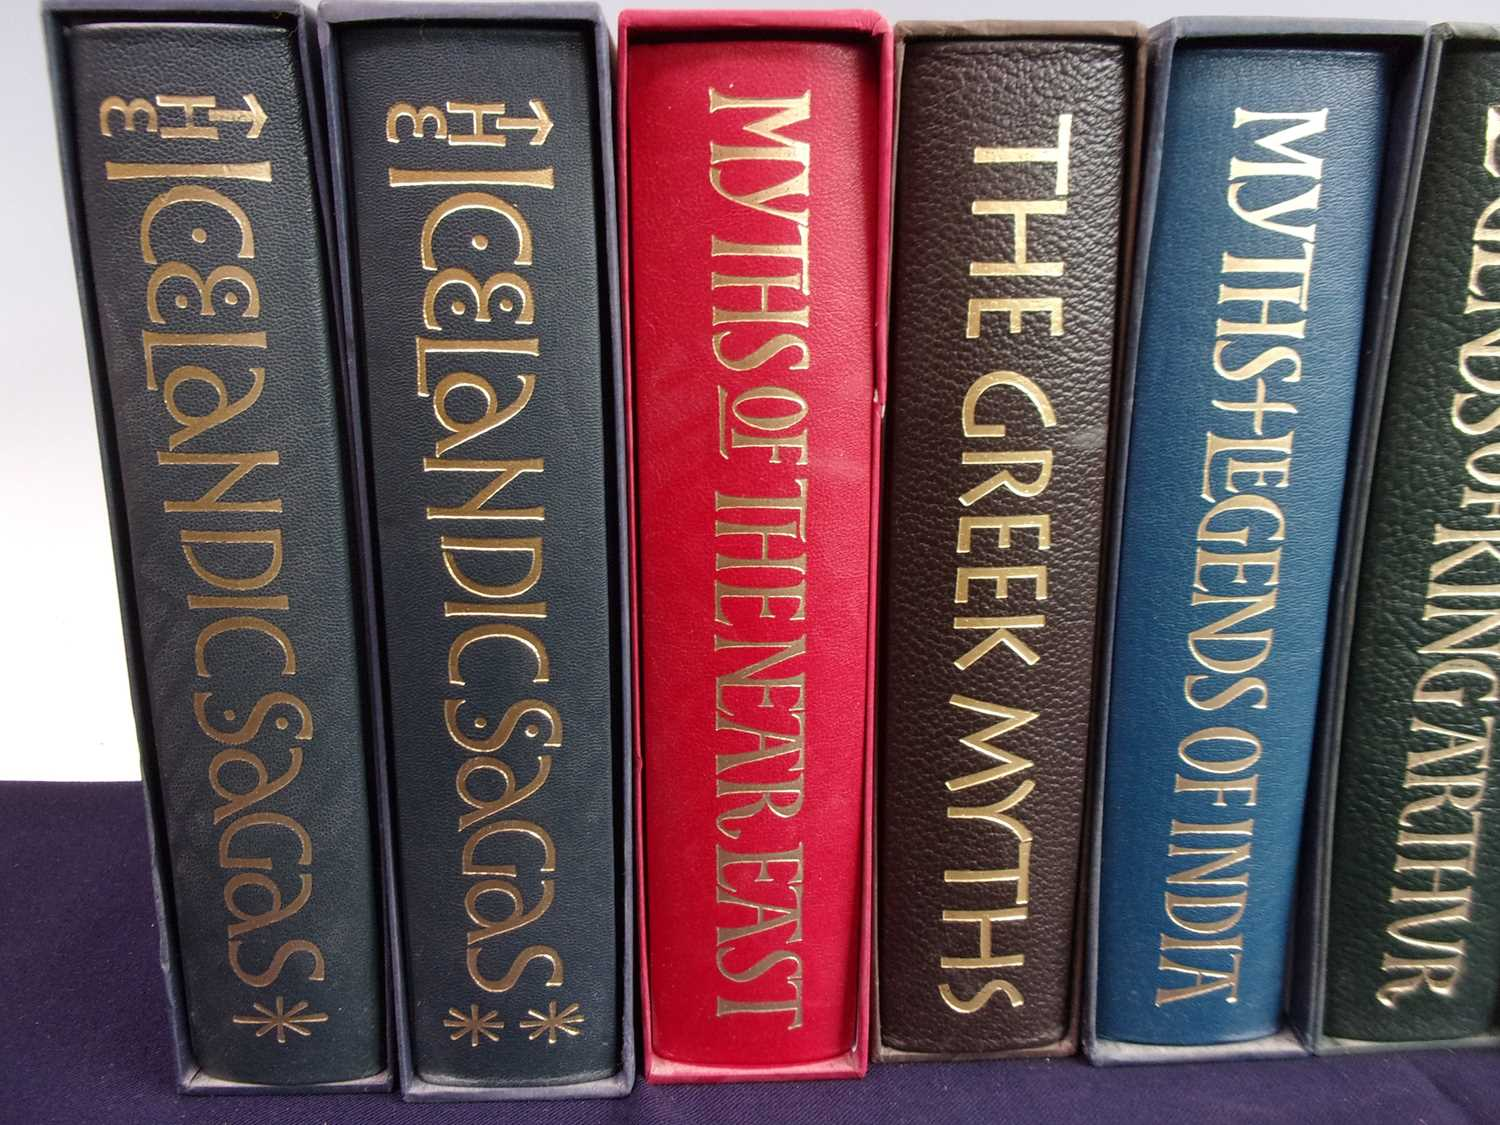 A Collection of Folio Society Myths and Legends to include Icelandic Sagas (2 vols), Greek Myths, - Image 2 of 3